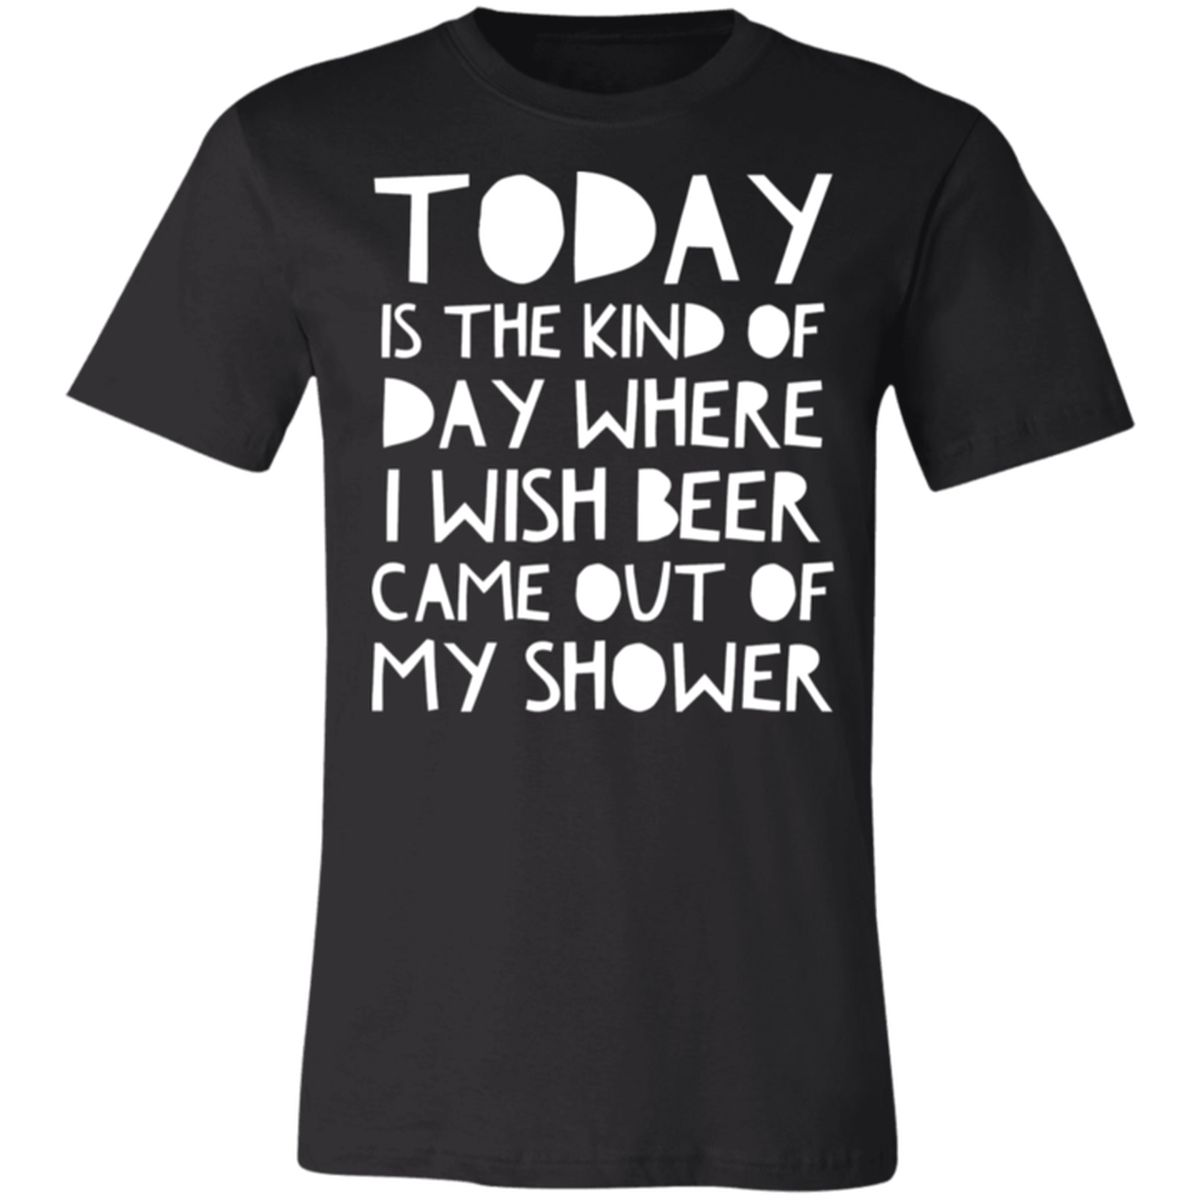 I Wish Beer Came Out Of My Shower Shirt